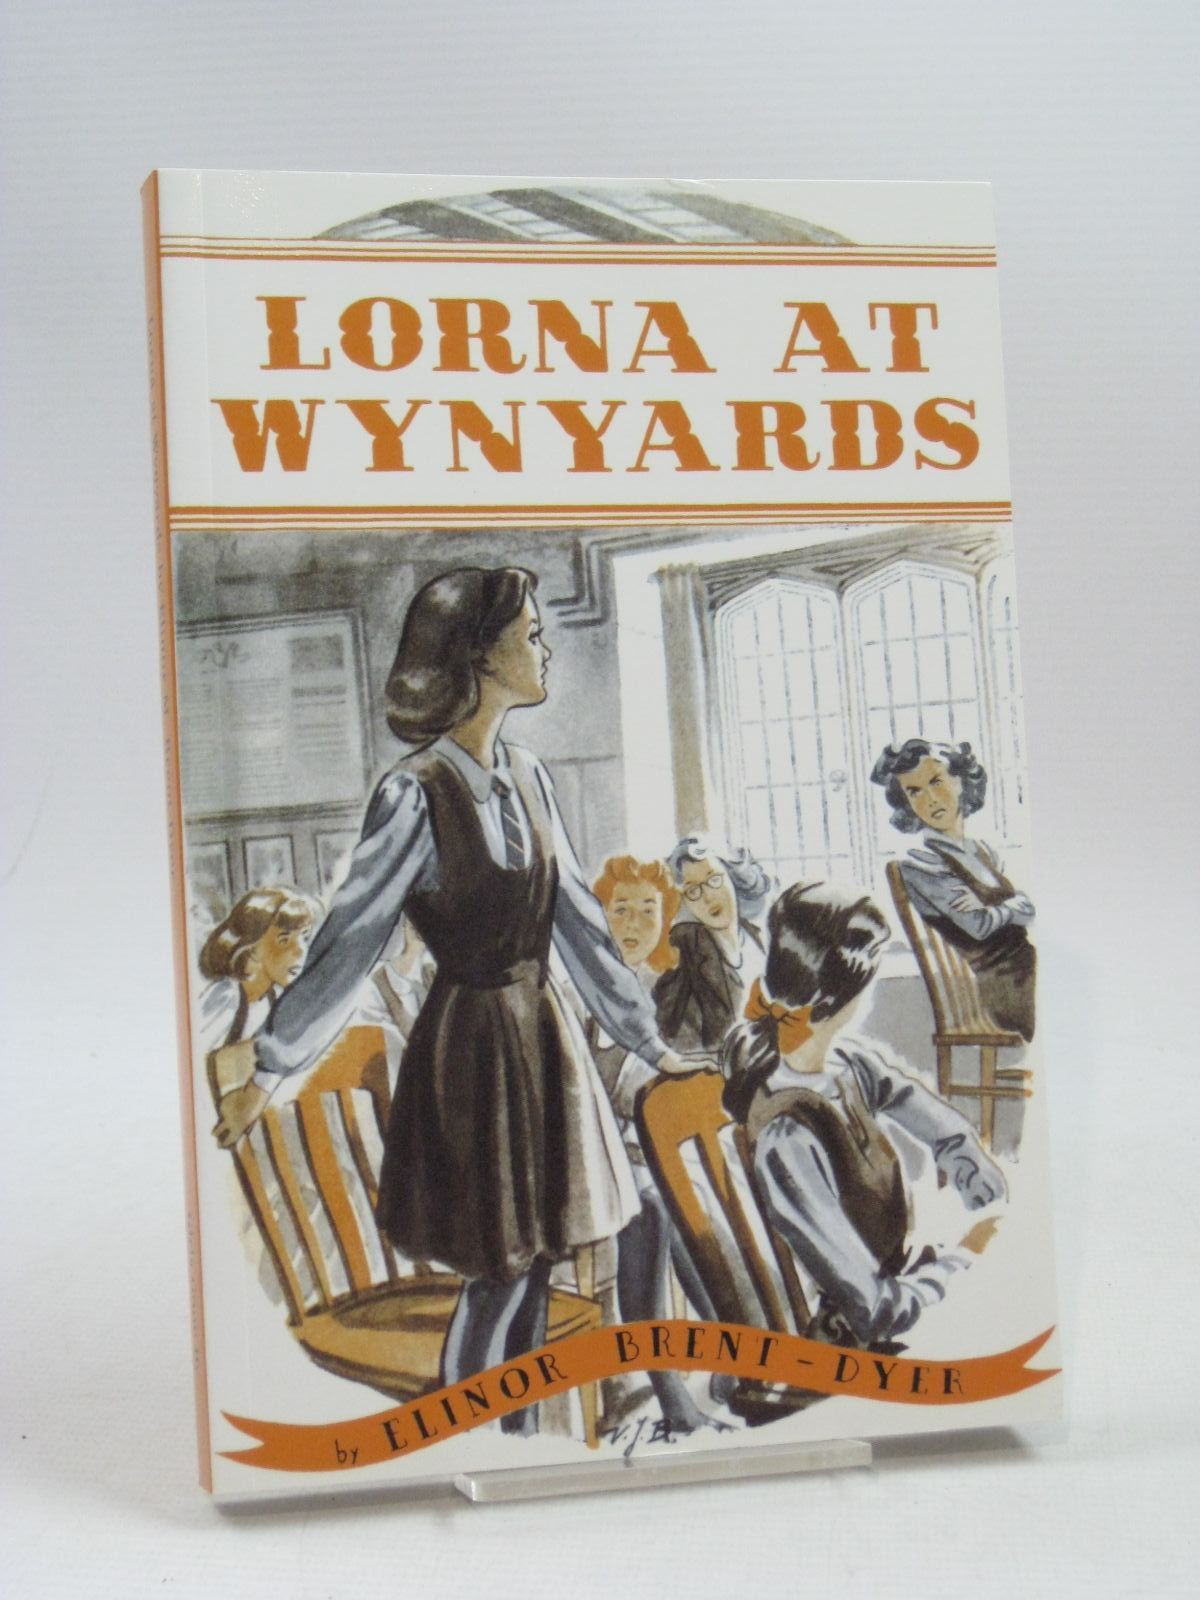 Photo of LORNA AT WYNYARDS written by Brent-Dyer, Elinor M. published by Girls Gone By (STOCK CODE: 1404147)  for sale by Stella & Rose's Books